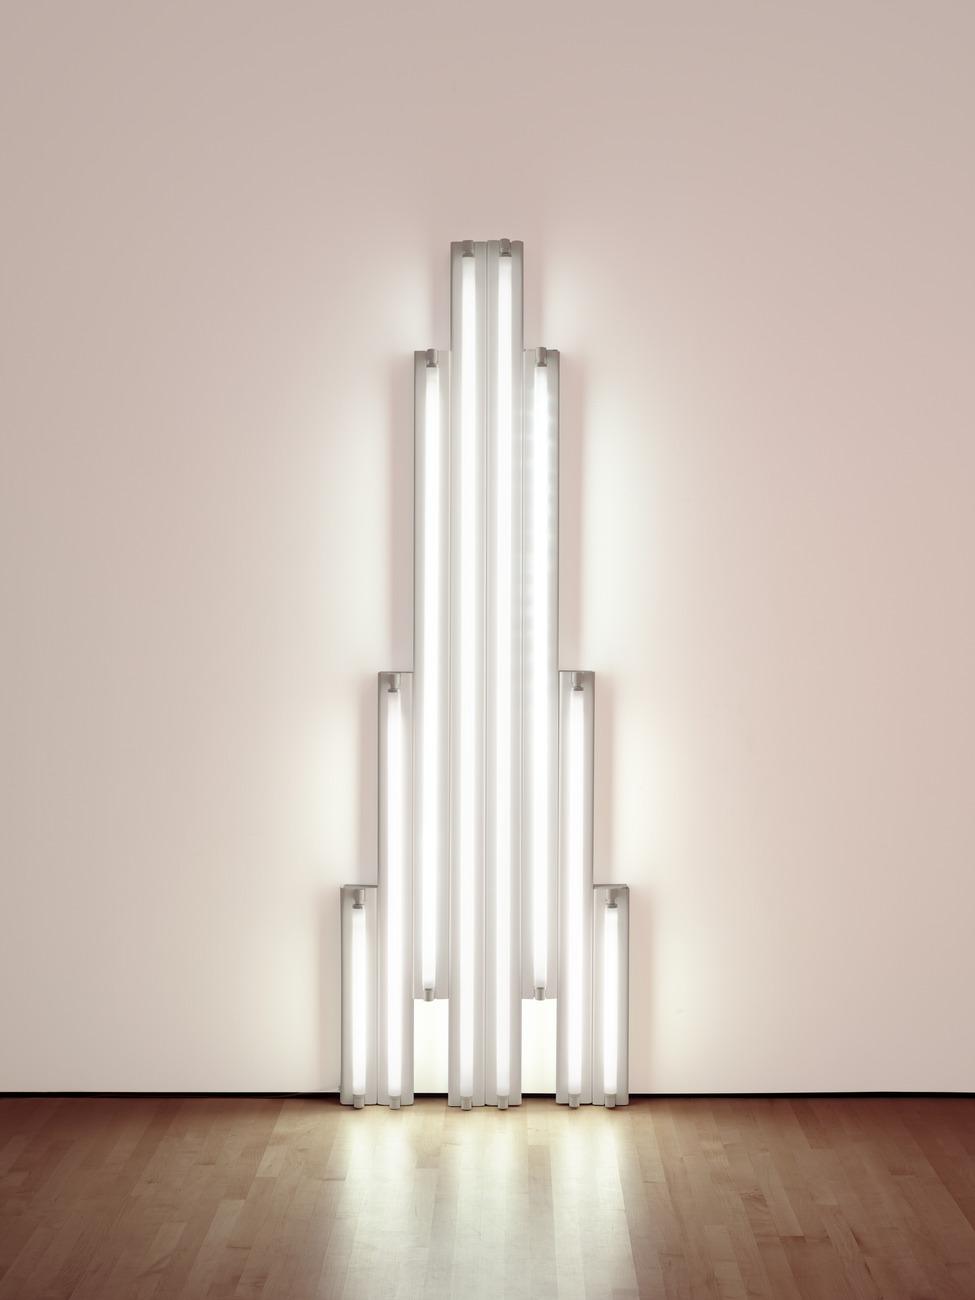 Artwork image, Dan Flavin, monument for V. Tatlin